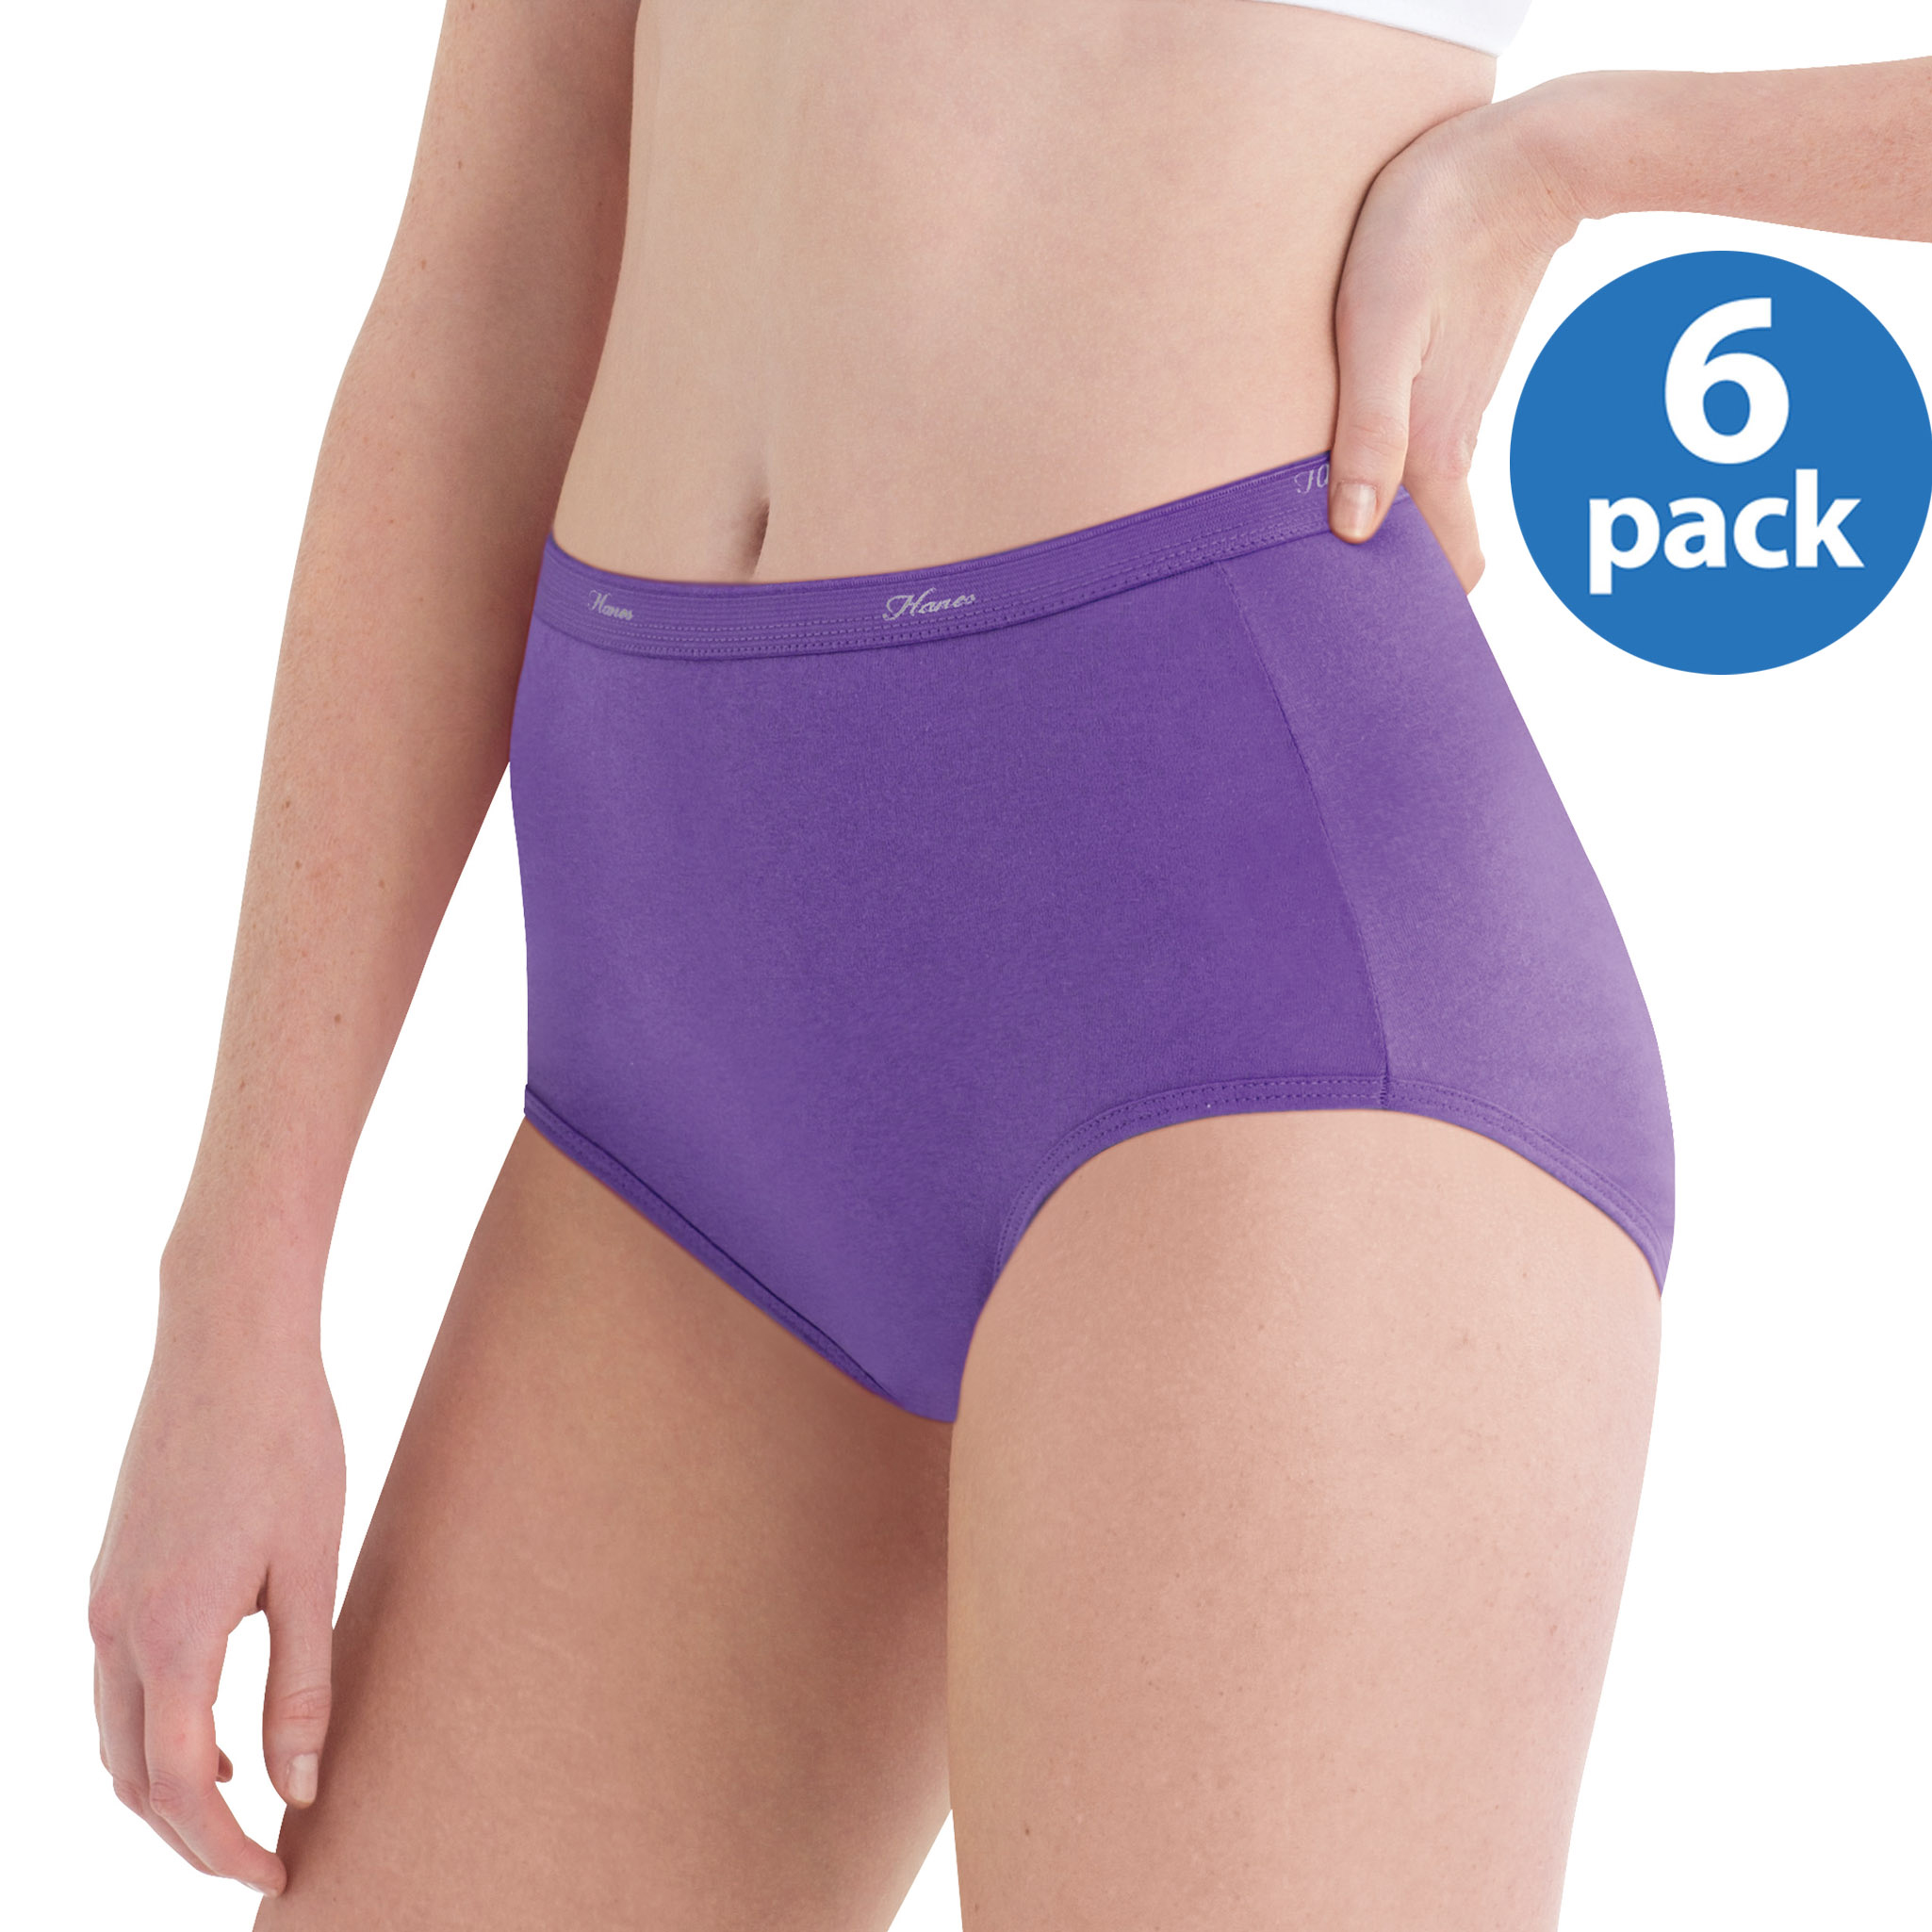 Hanes Women's Cotton No Ride Up Assorted Dyed Briefs 6-Pack